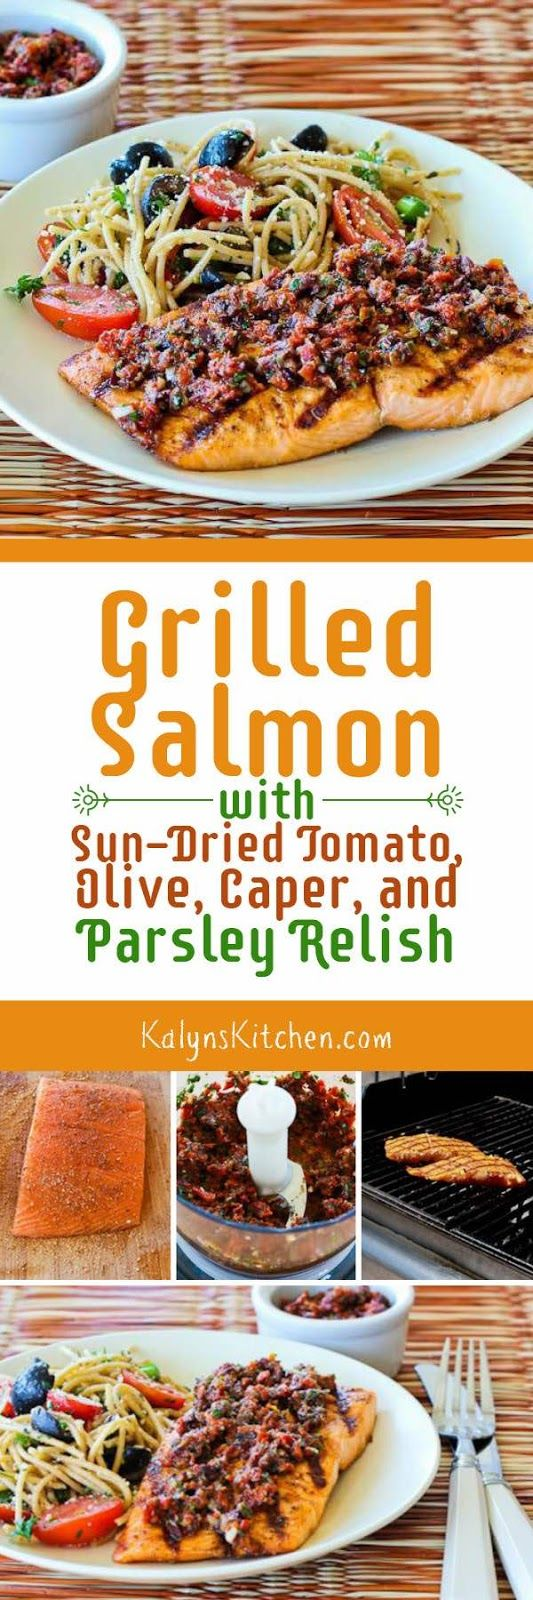 I love this tasty Grilled Salmon with Sun-Dried Tomato, Olive, Caper, and Parsley Relish, and if you ignore the spaghetti salad in the photo, this tasty salmon is low-carb, gluten-free, South Beach Diet Phase One, Whole 30, and Paleo! [from KalynsKitchen.com]